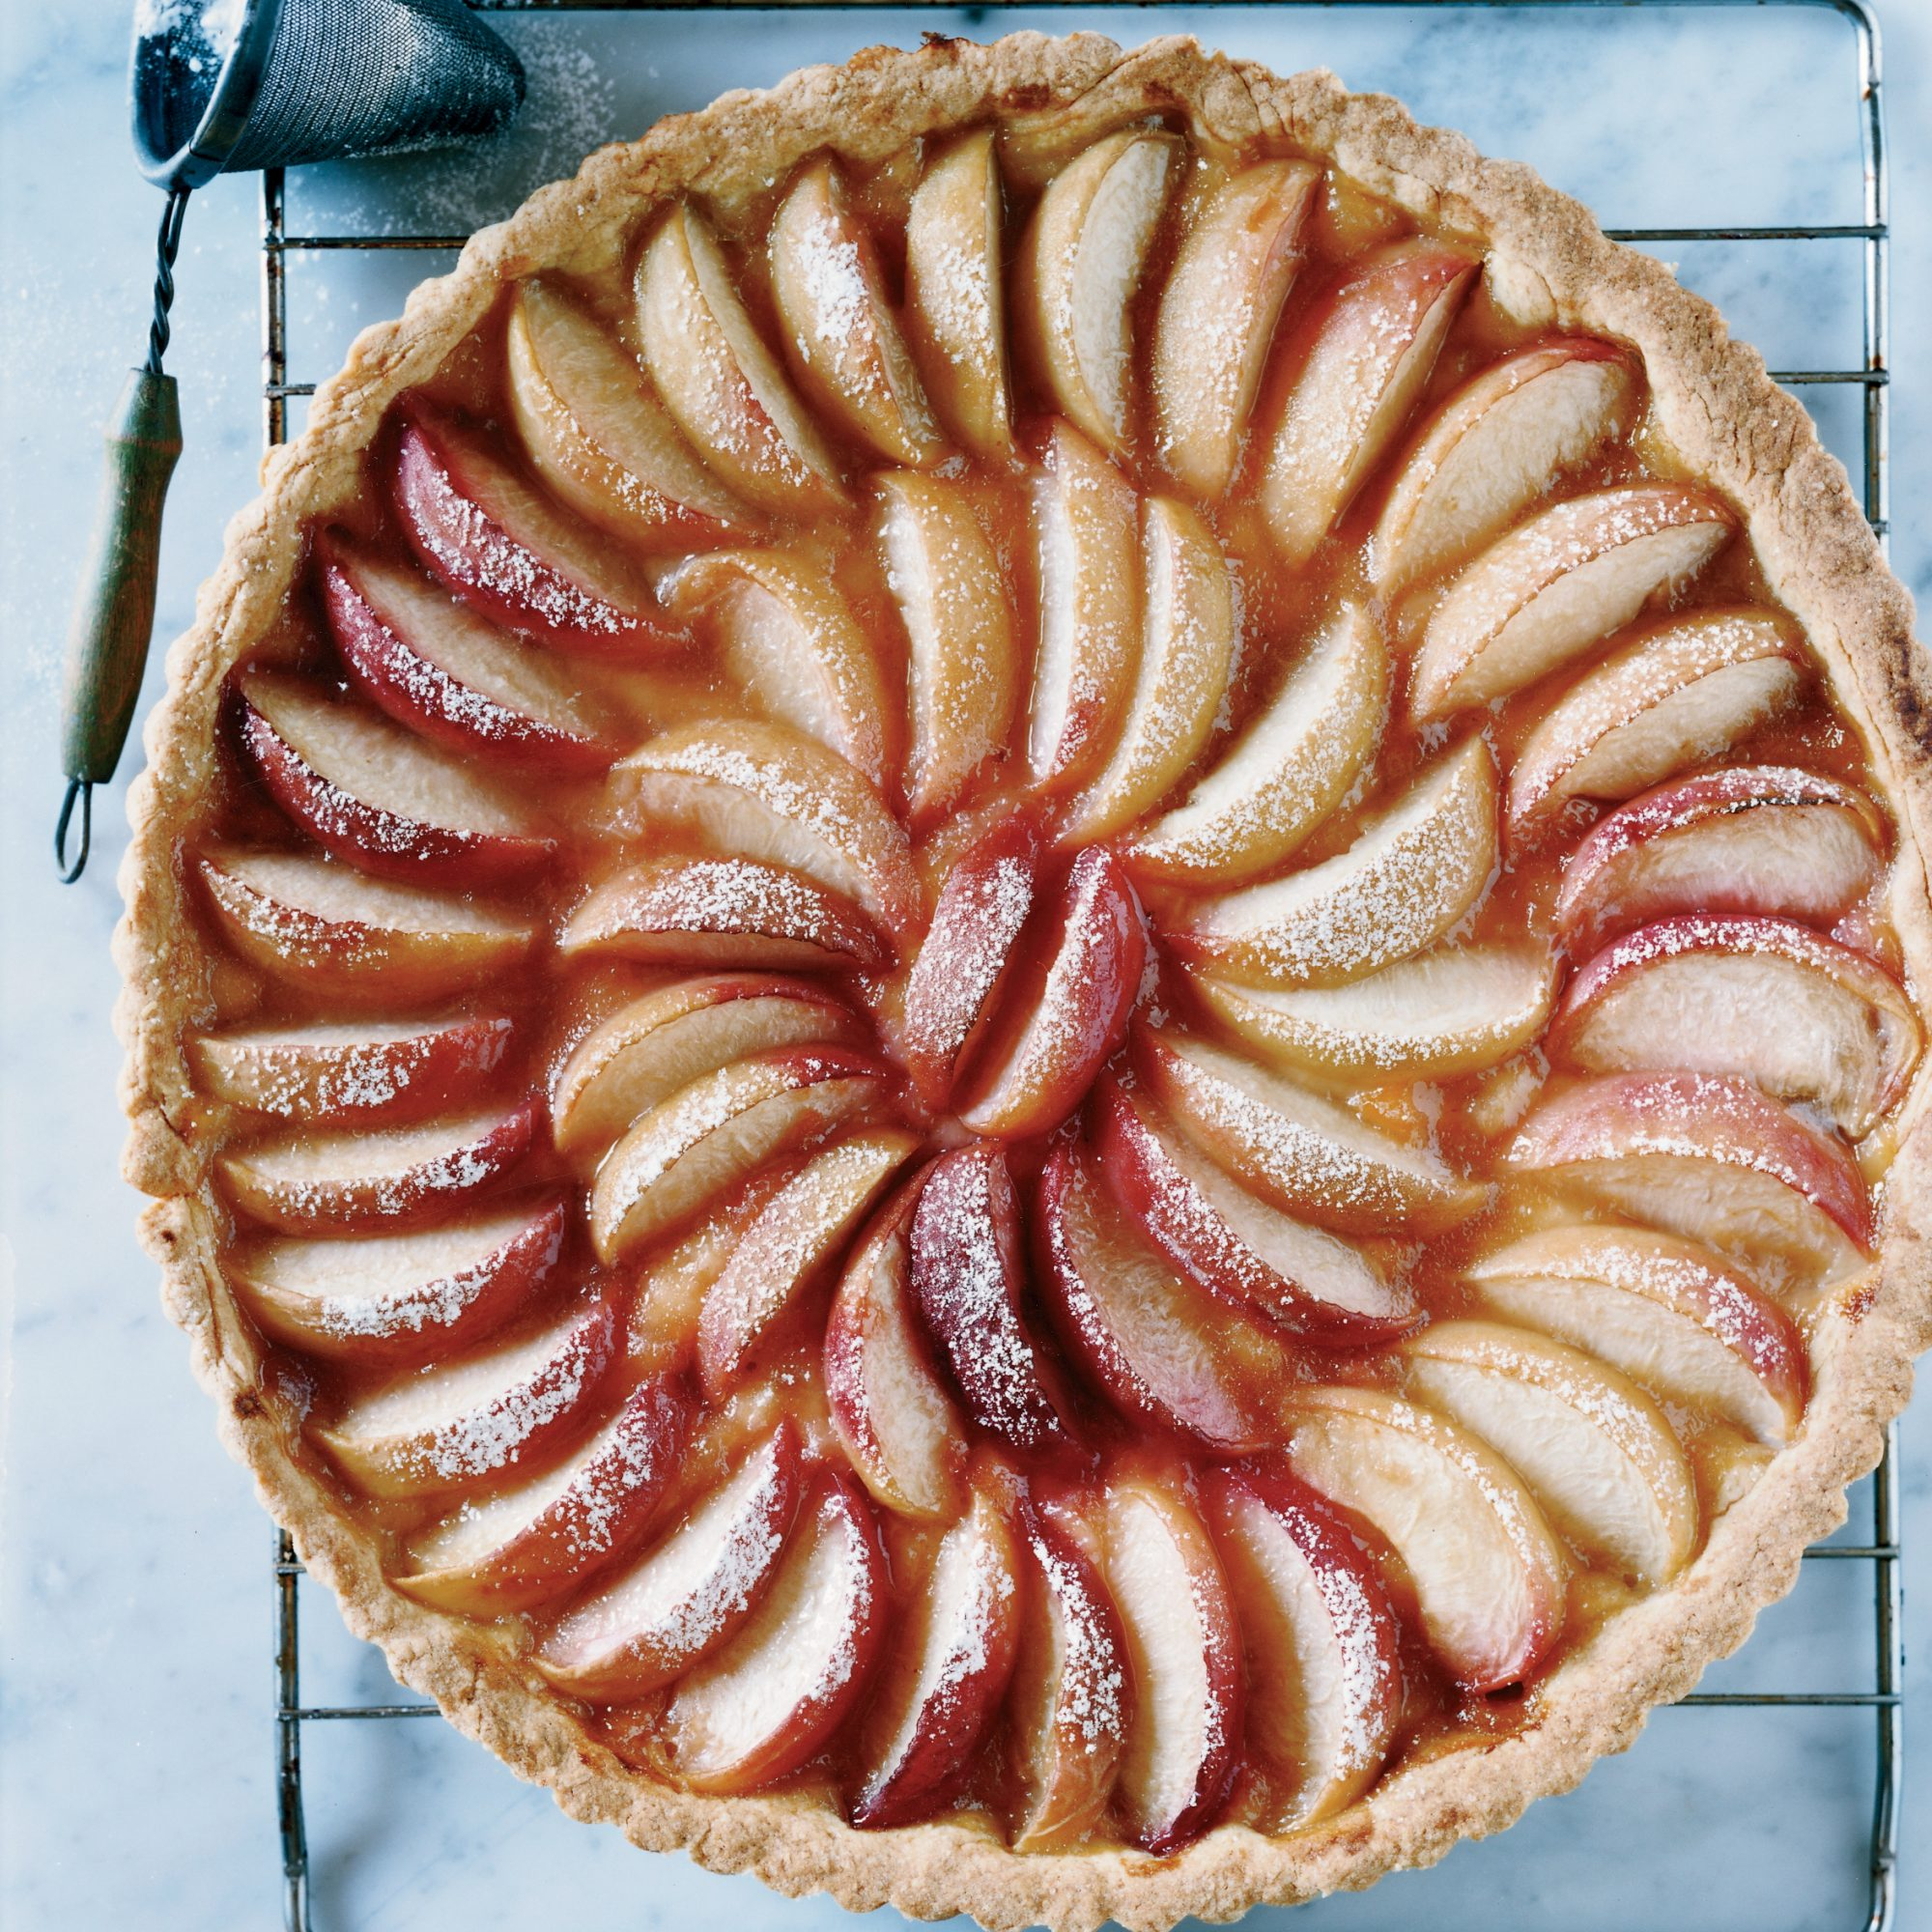 200909-r-white-peach-tart.jpg